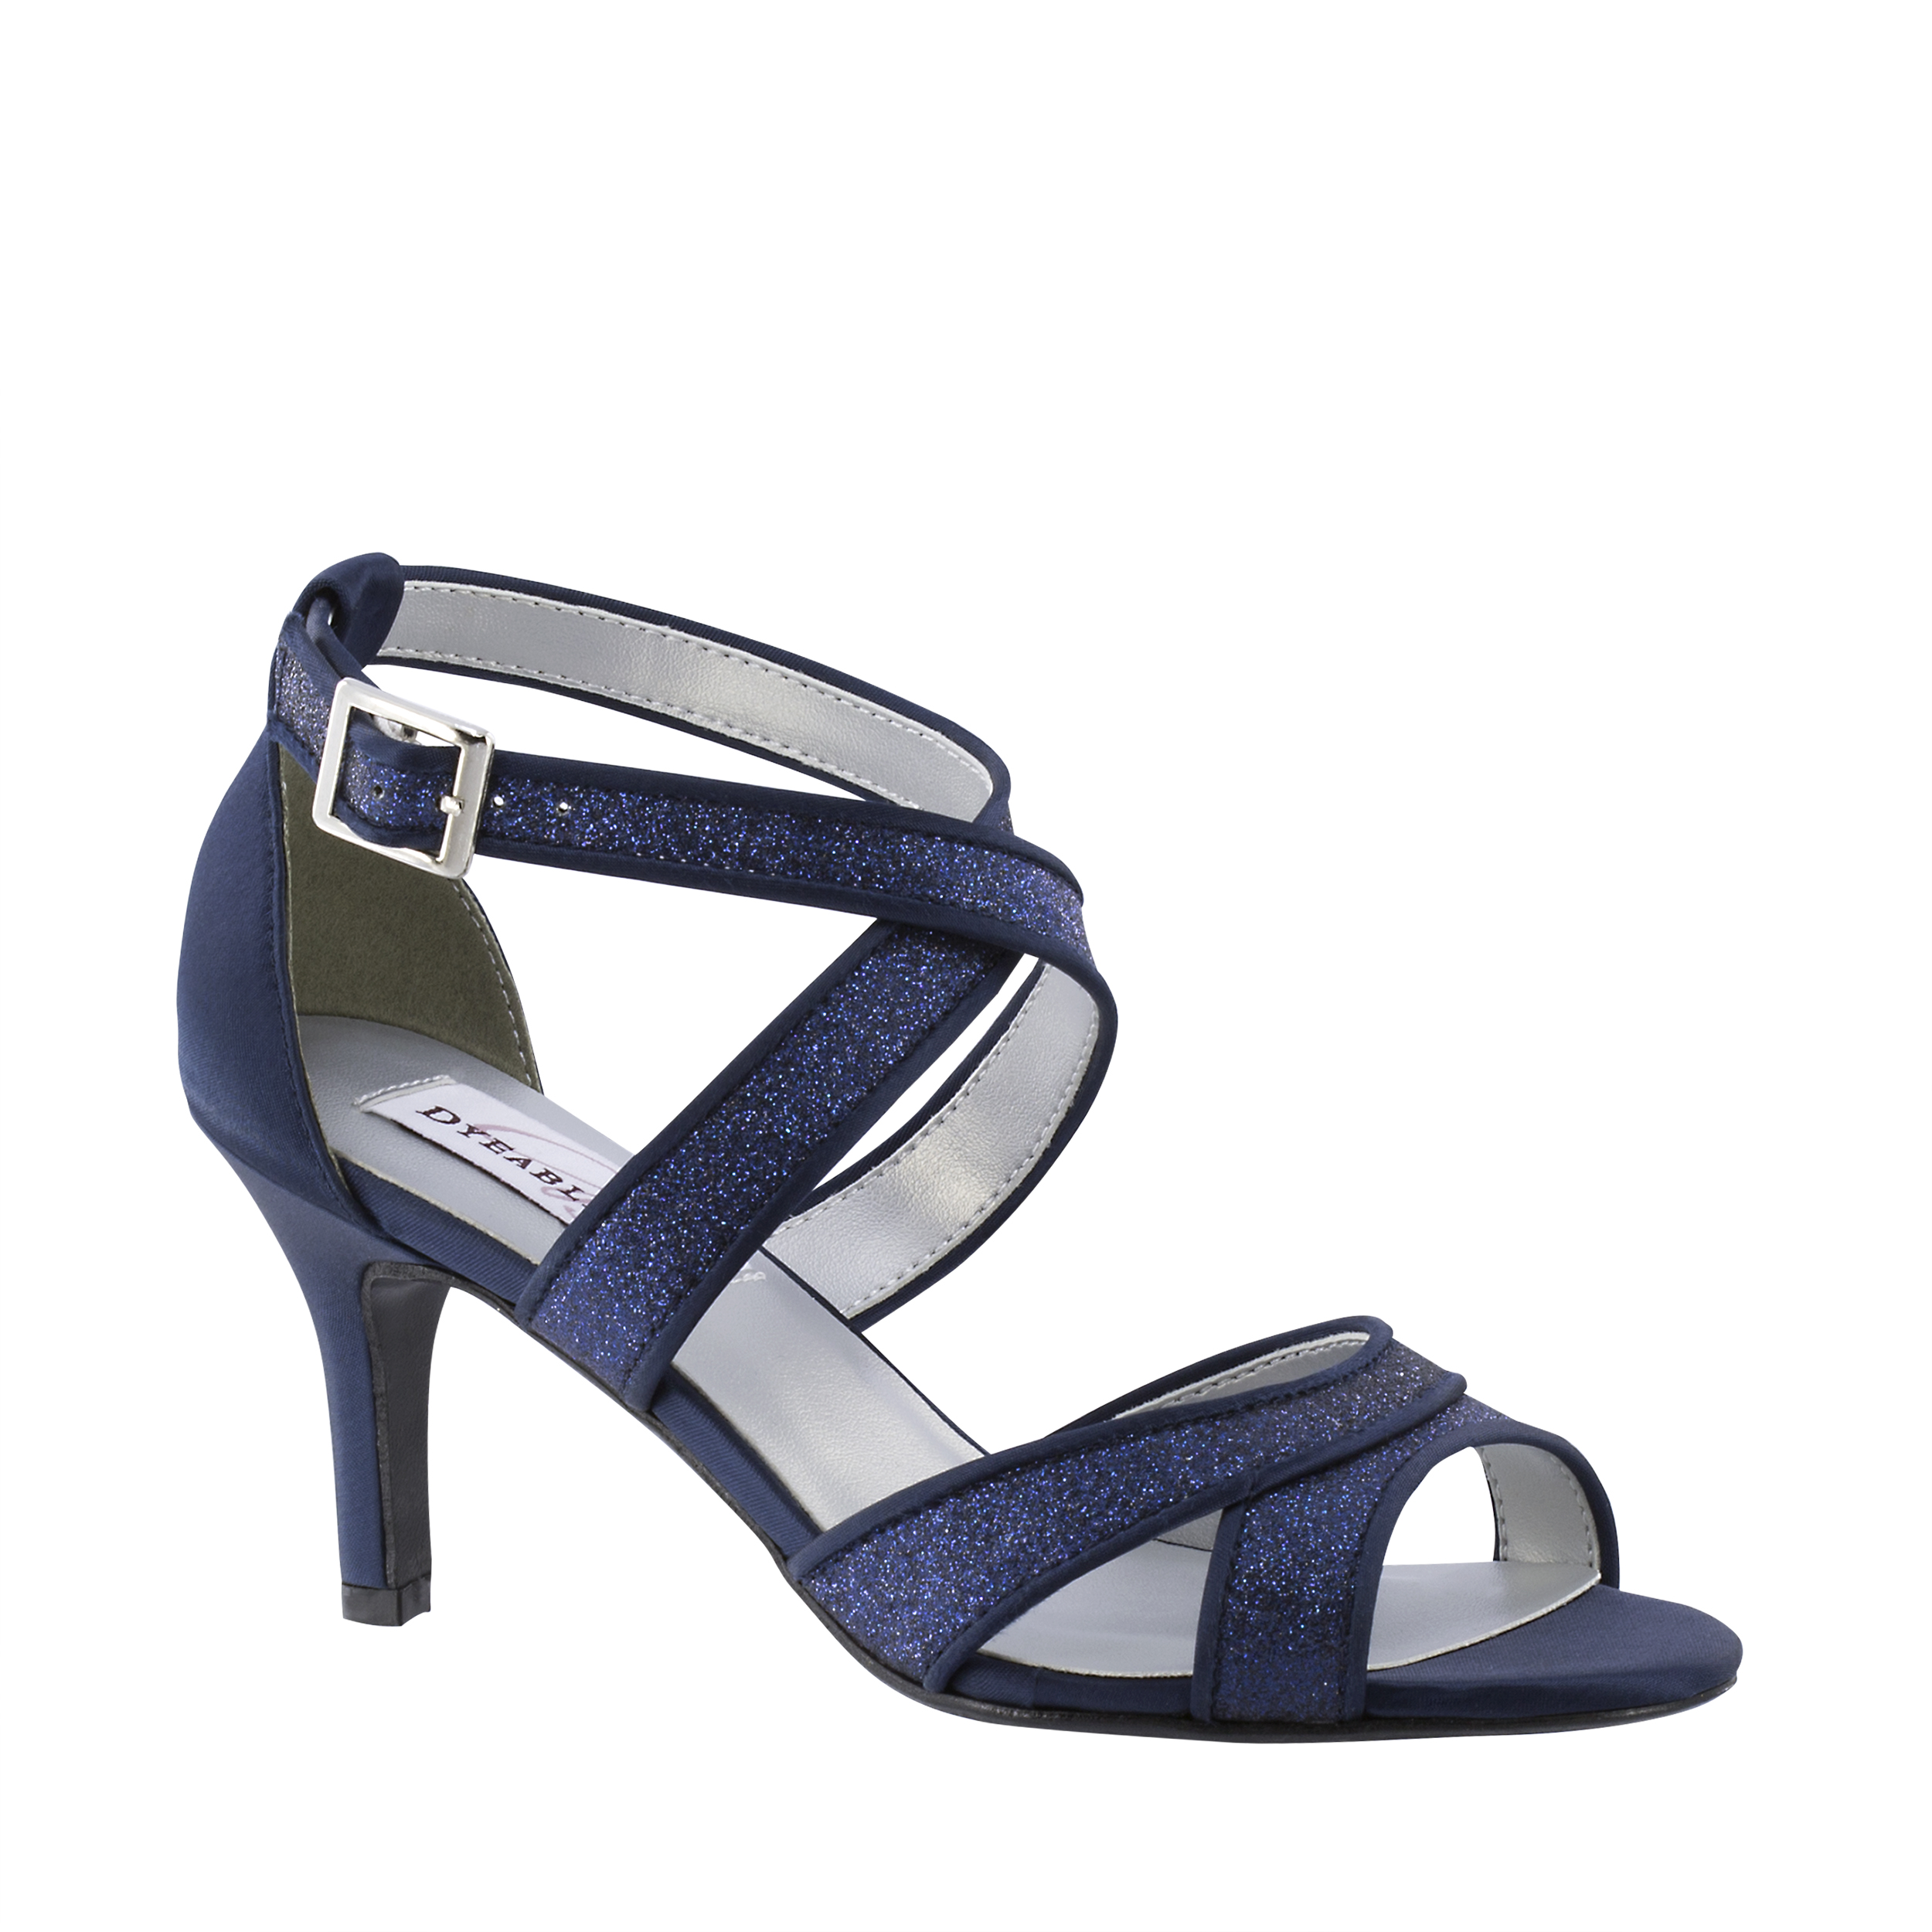 Women's Dyeables Amber Strappy Sandal Economical, stylish, and eye-catching shoes